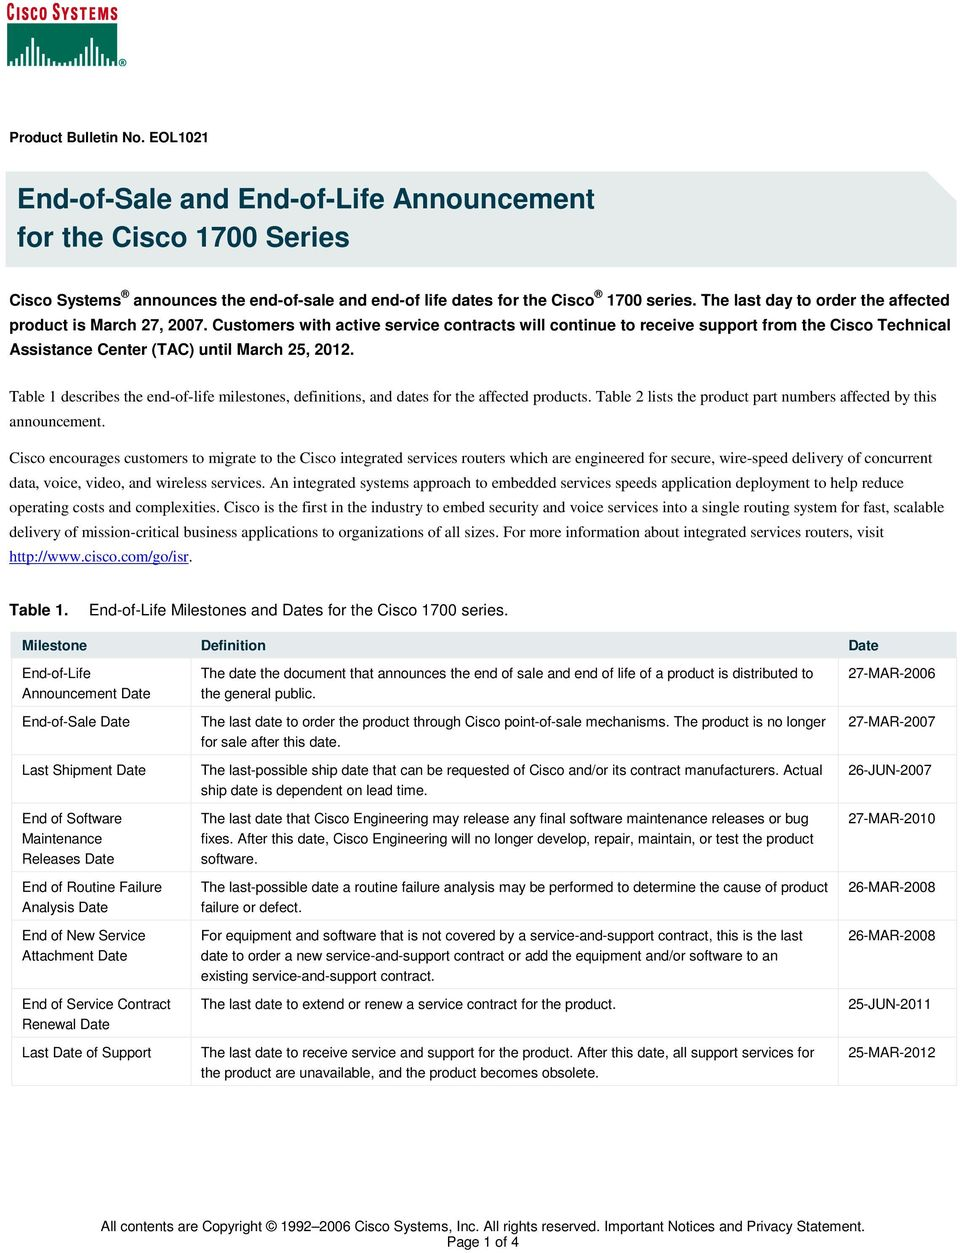 End-of-Sale and End-of-Life Announcement for the Cisco 1700 Series - PDF